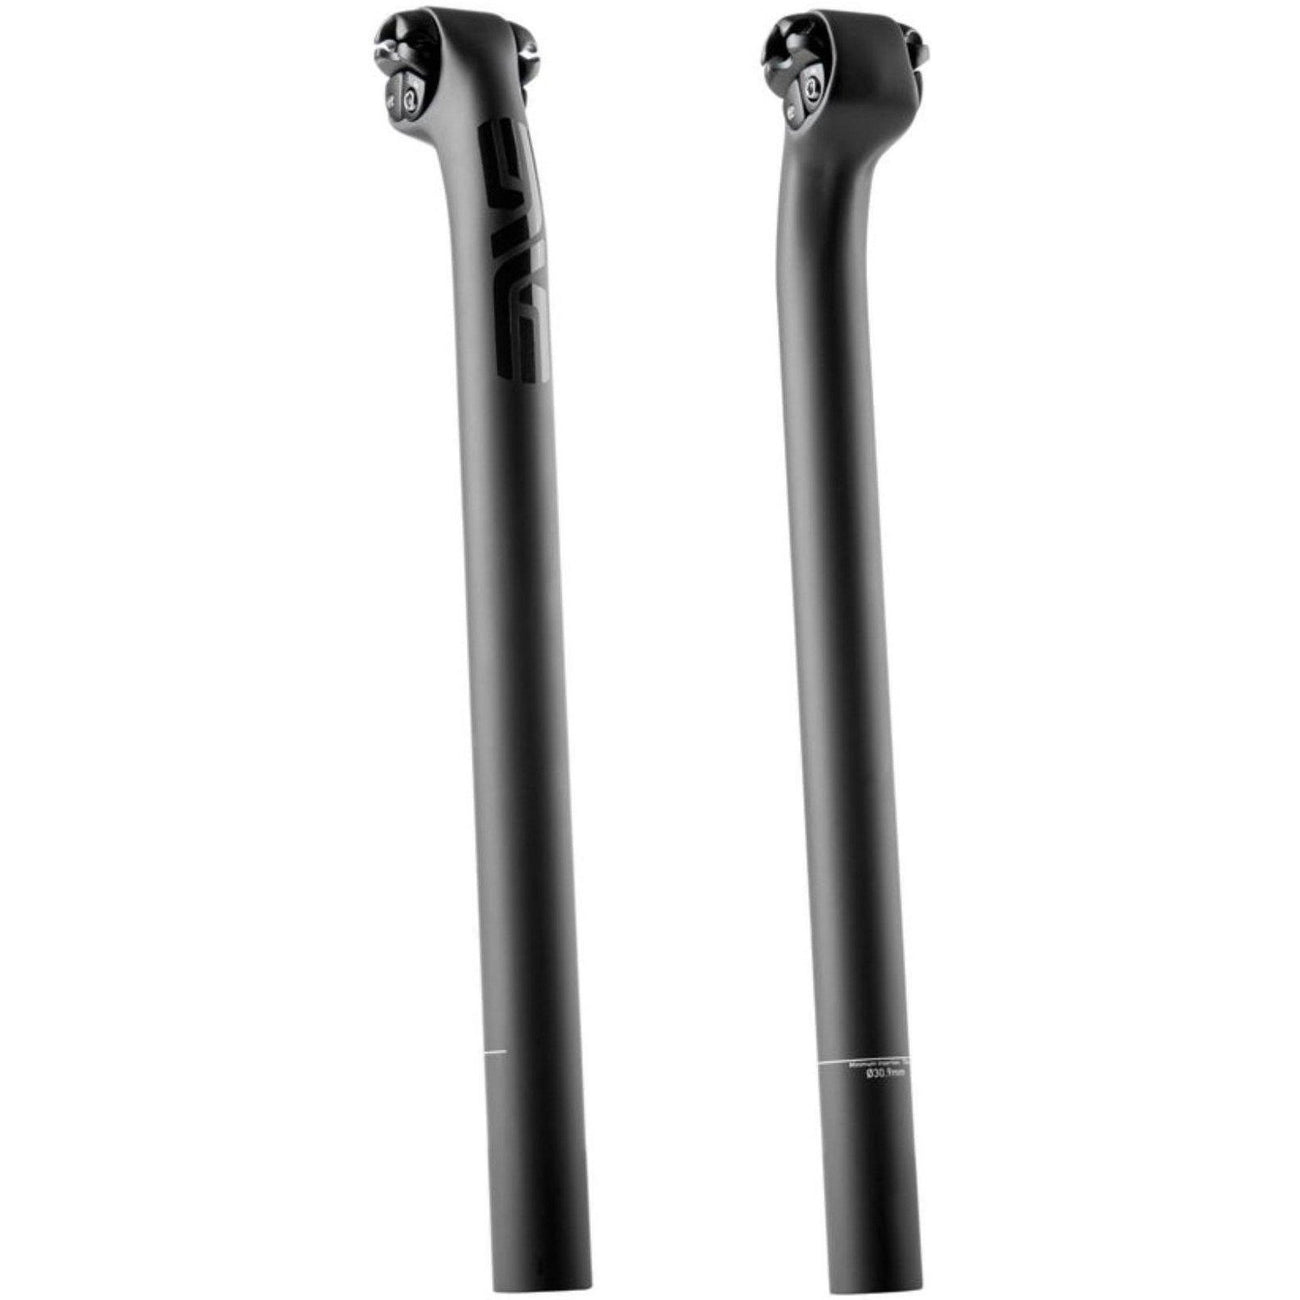 Seatposts - ENVE Carbon Seatpost 25mm Offset 2 Bolt